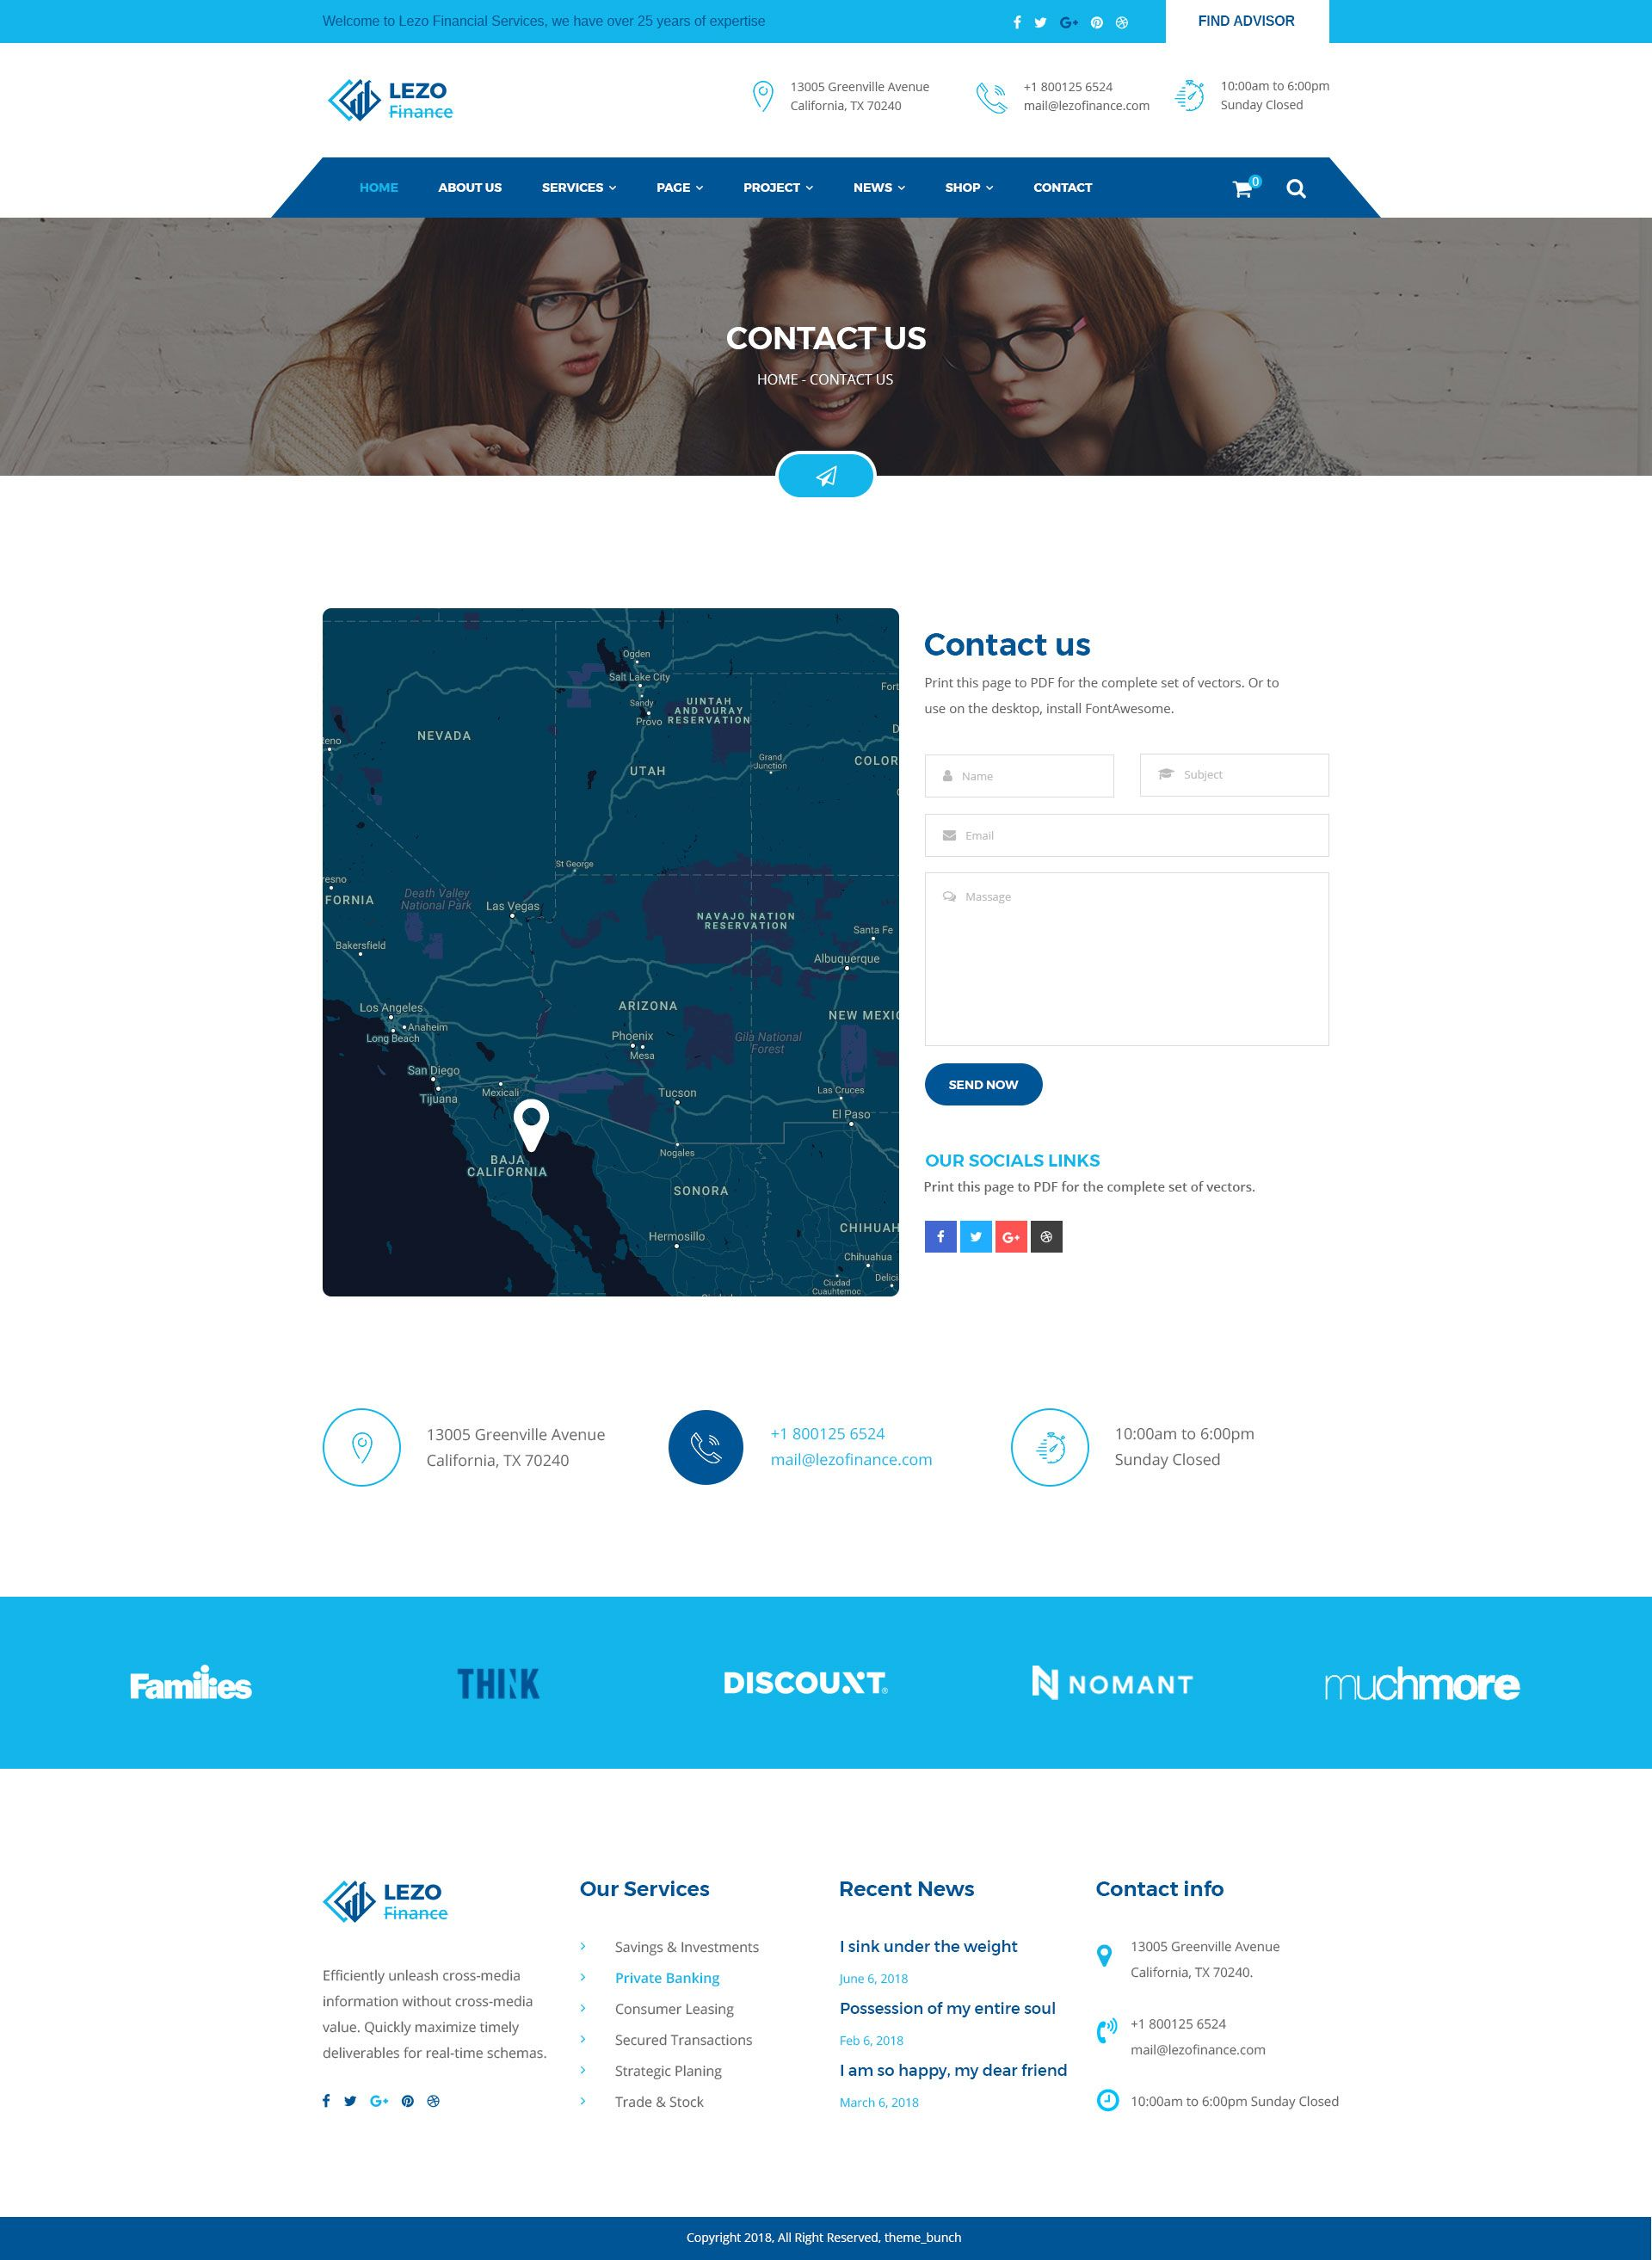 Lezo Business Finance Consulting Psd Template Finance Psd Templates Finance Tracker